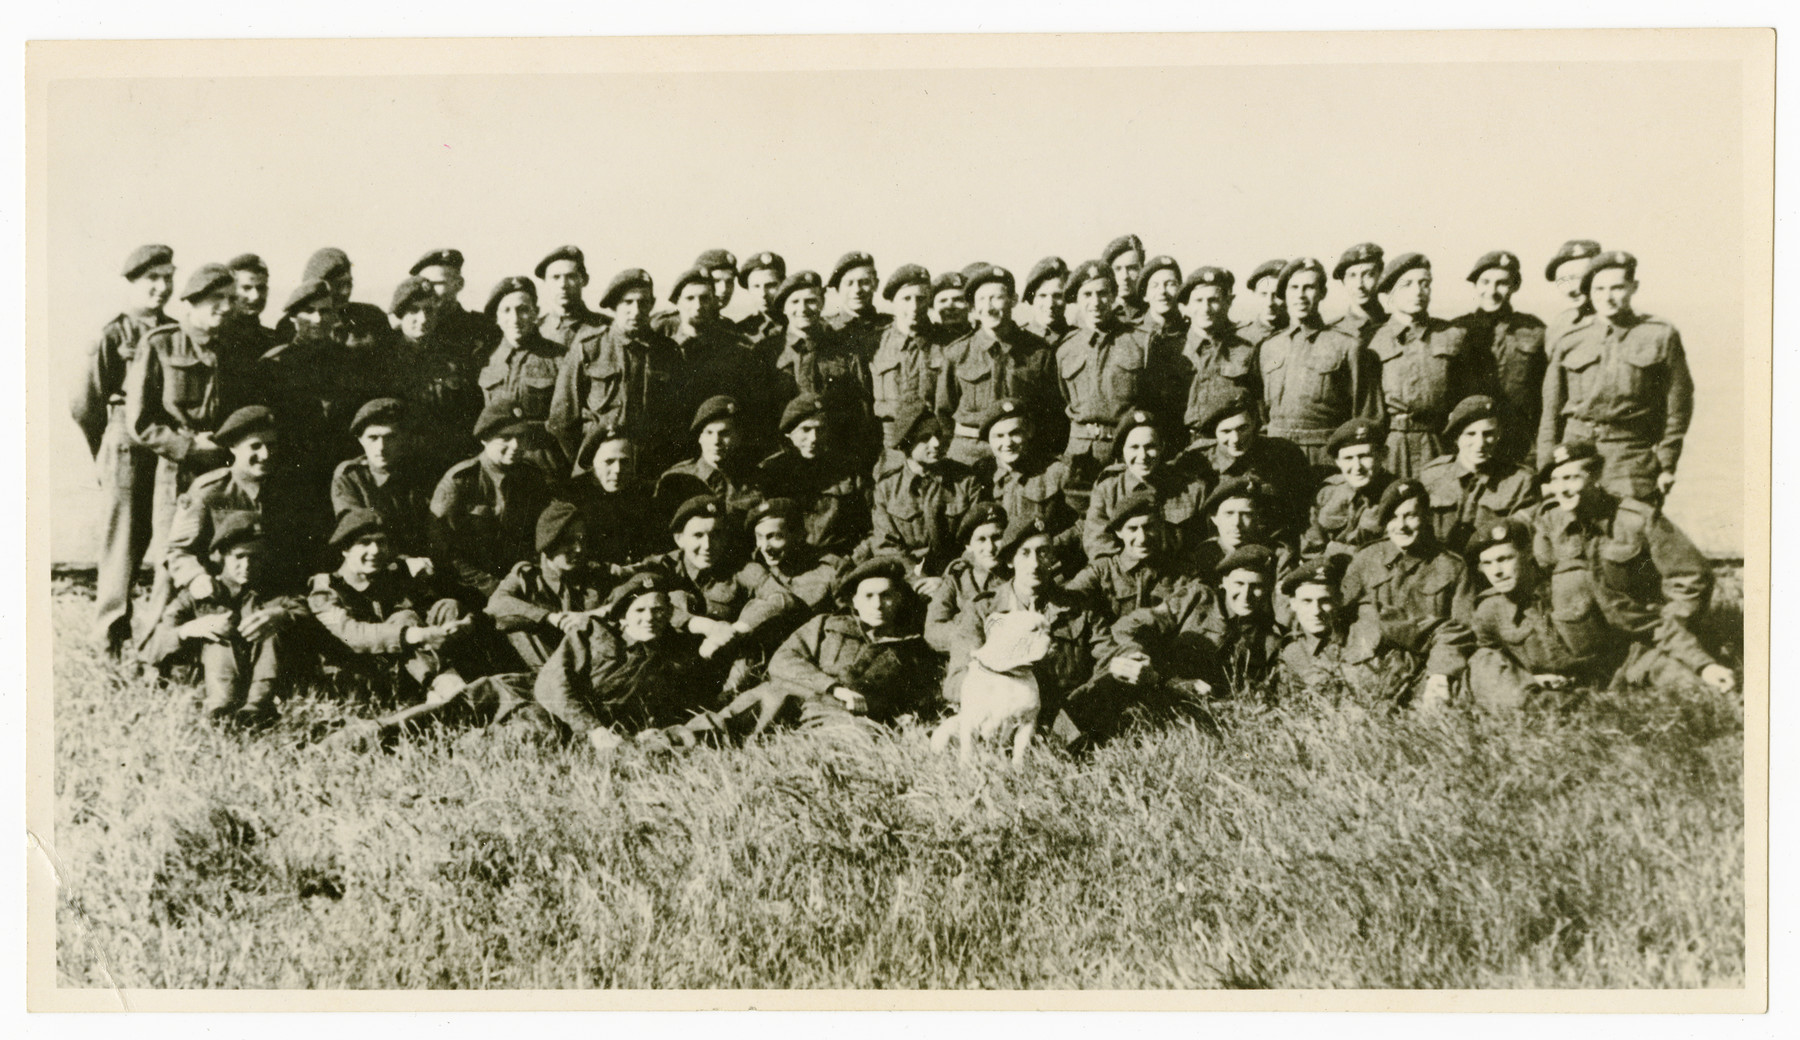 Group portrait of the X Troop -- a unit of German speaking British soliders, officially the 3rd Troop of the Tenth Inter-Allied IA Commamdos.